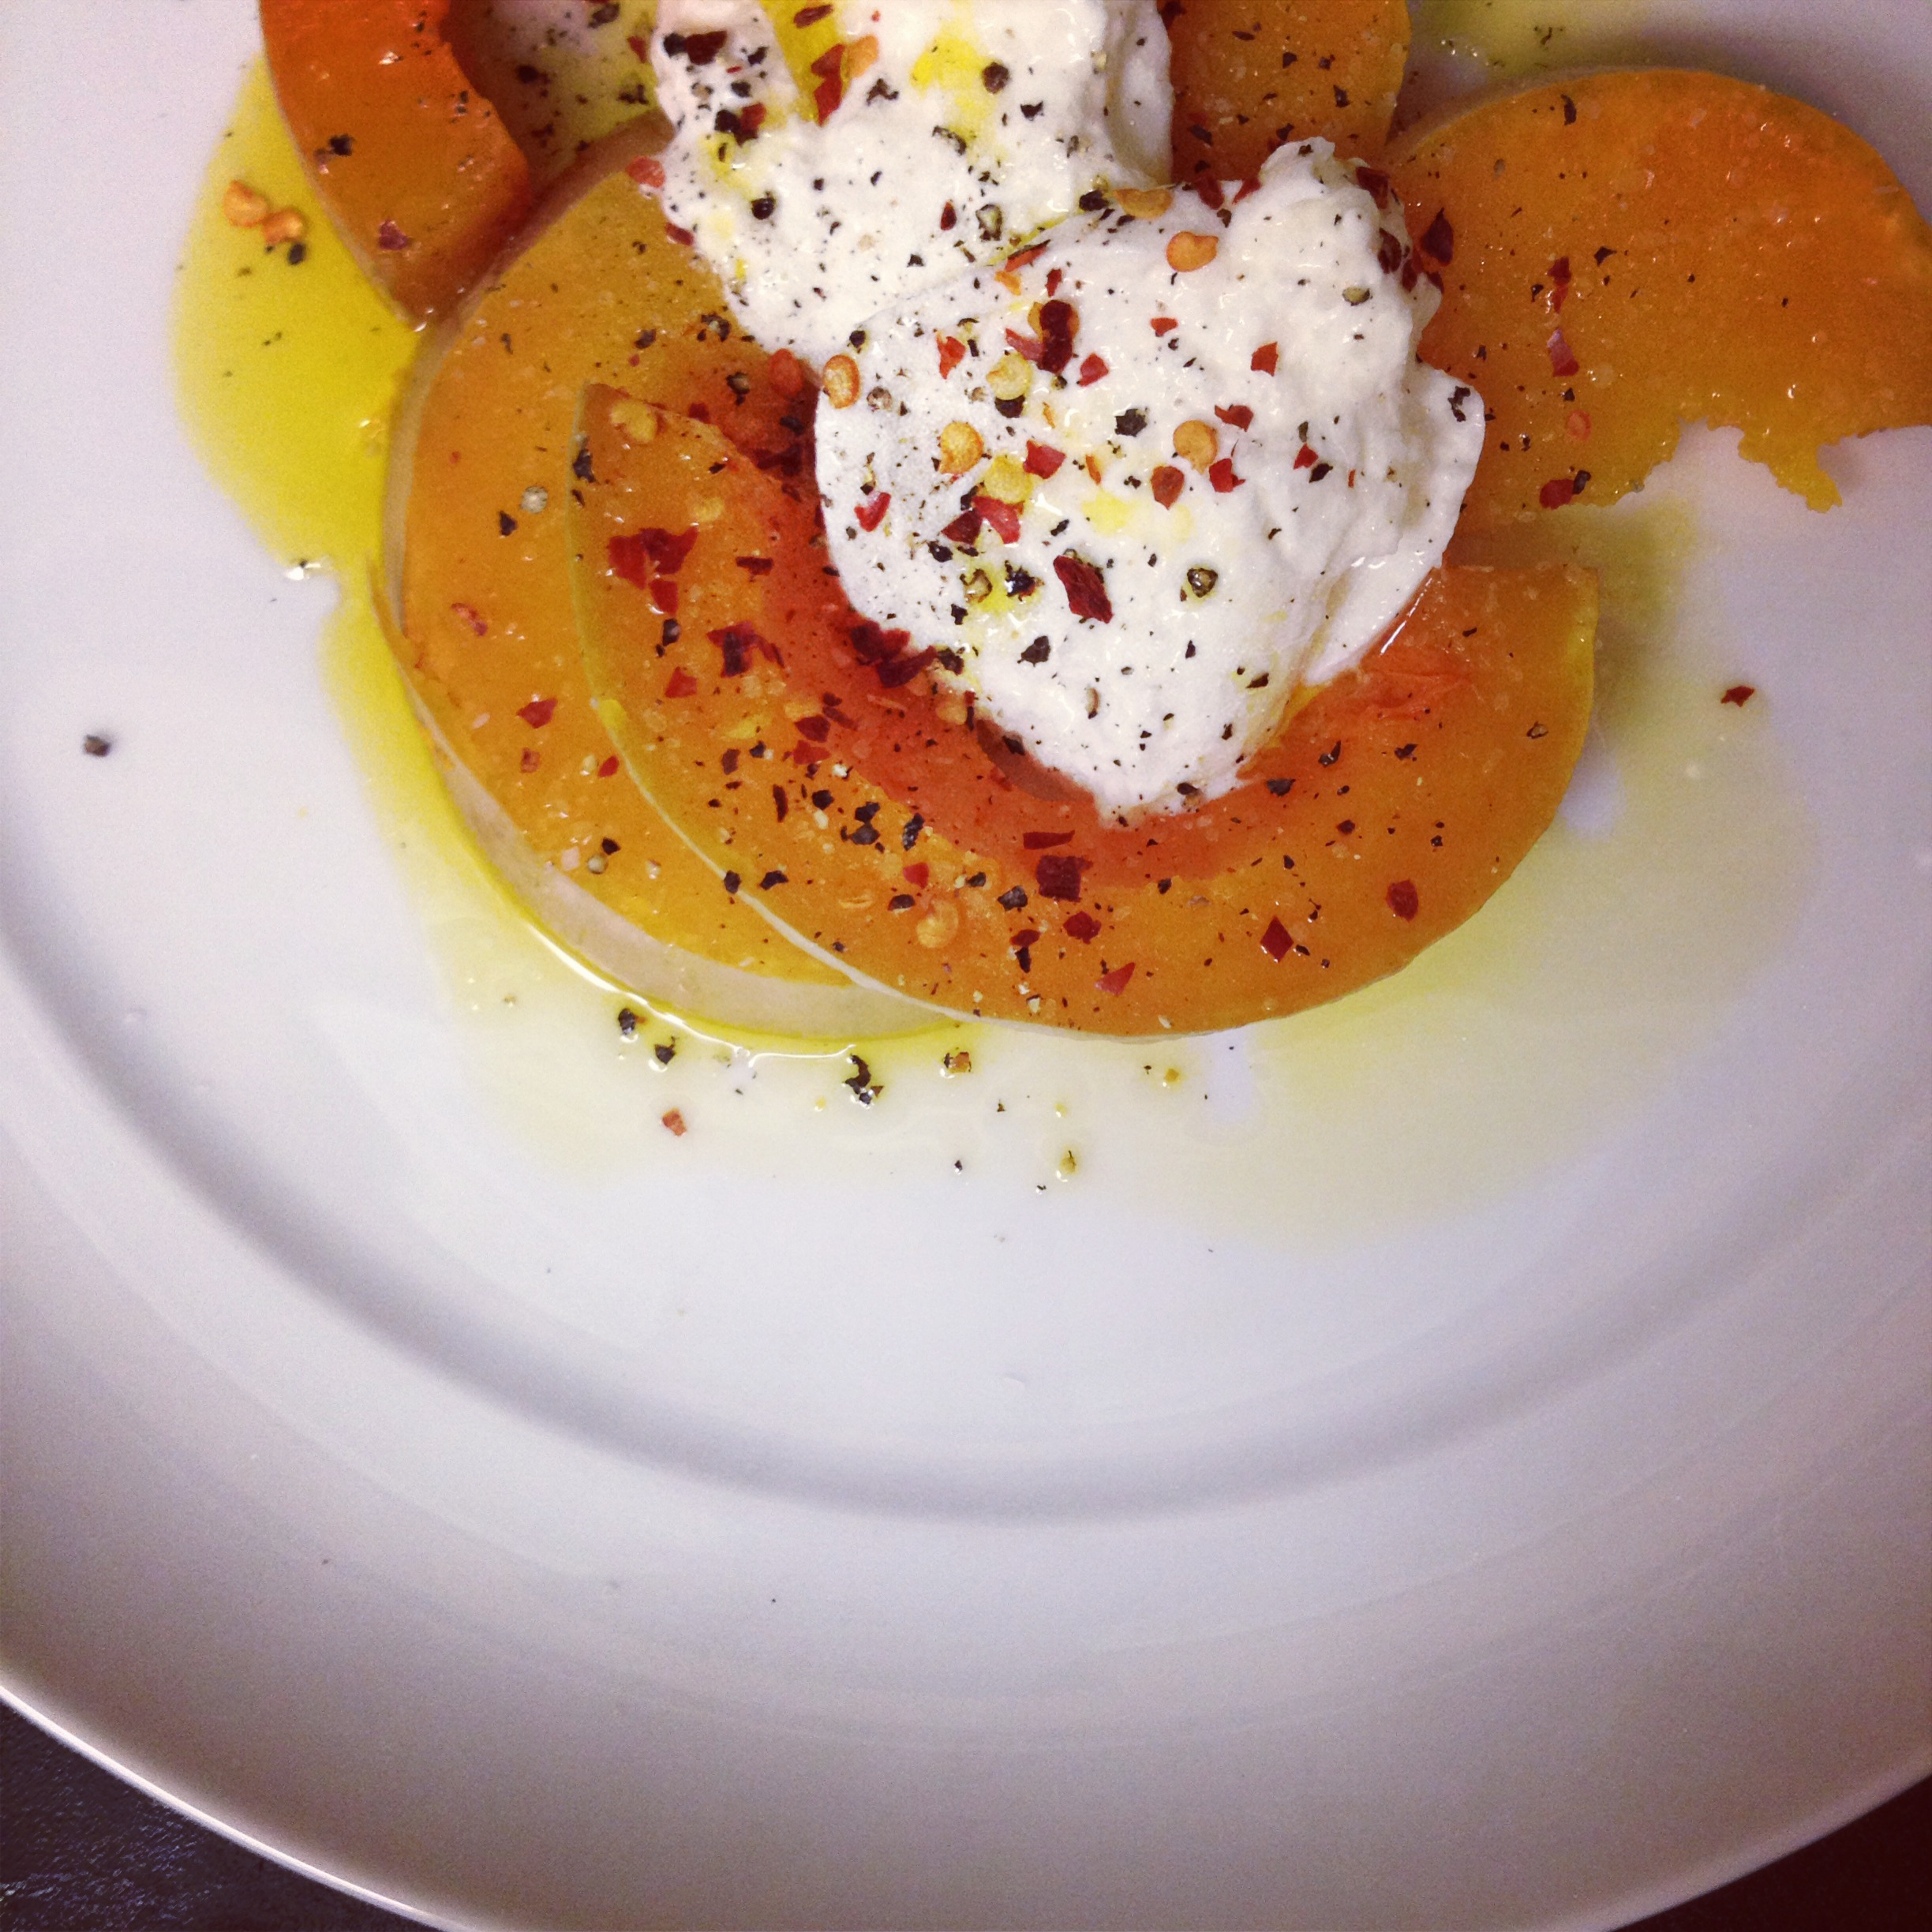 Meatless Monday: Roasted Butternut Squash with Burrata